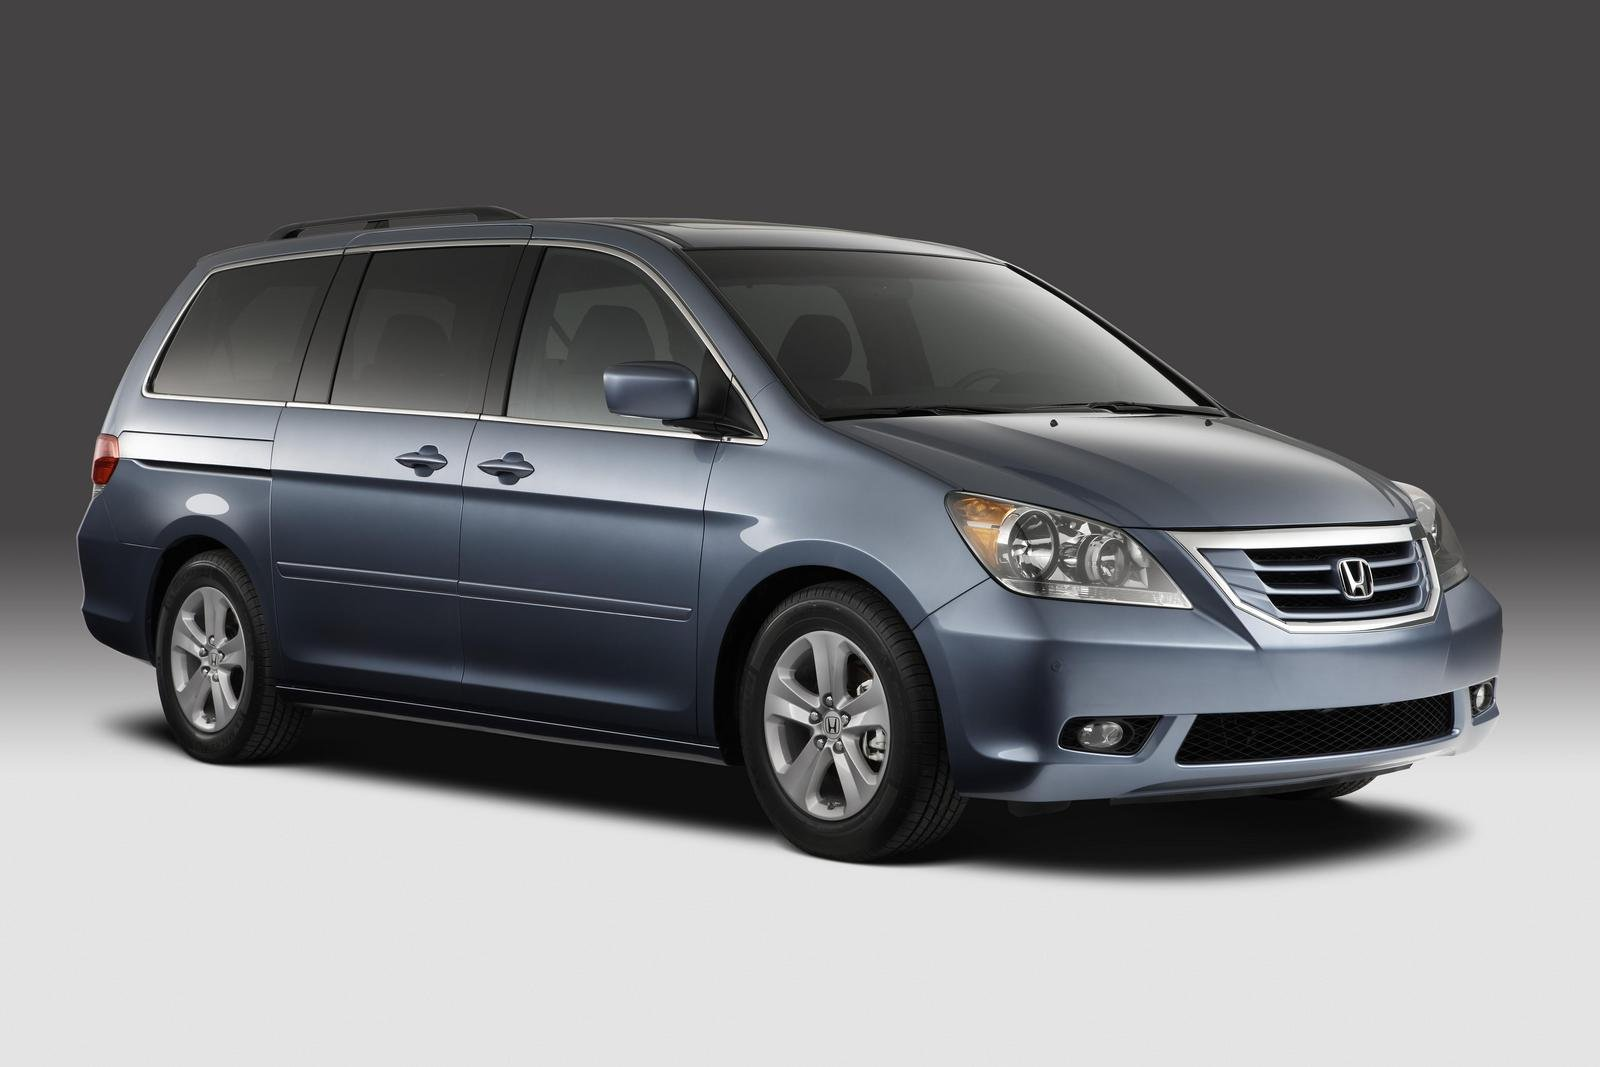 2008 honda odyssey review top speed. Black Bedroom Furniture Sets. Home Design Ideas